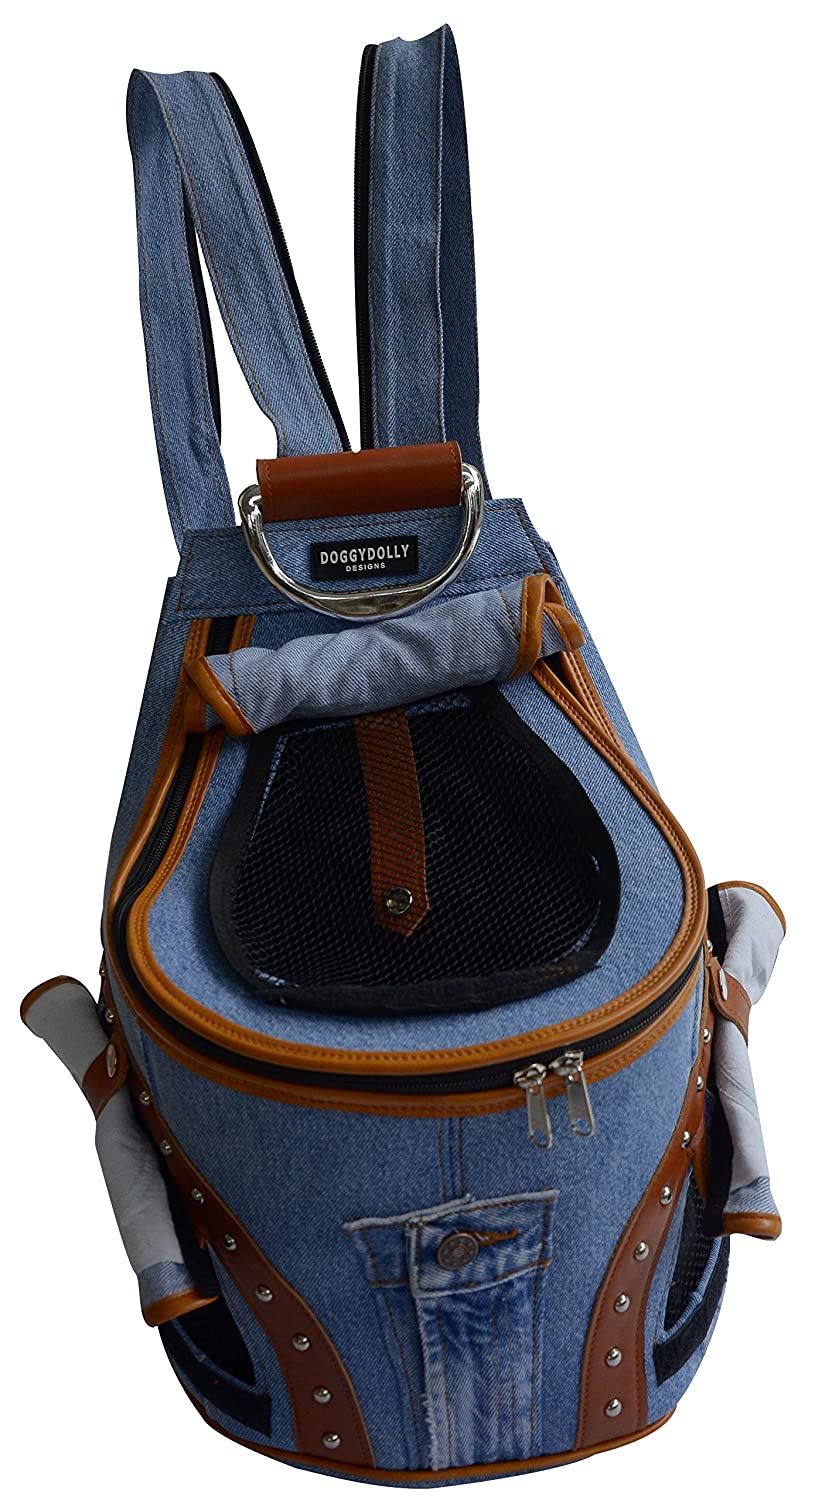 Doggy Dolly PC031 Denim Rucksack for Dogs with Net Window, bluee and Brown